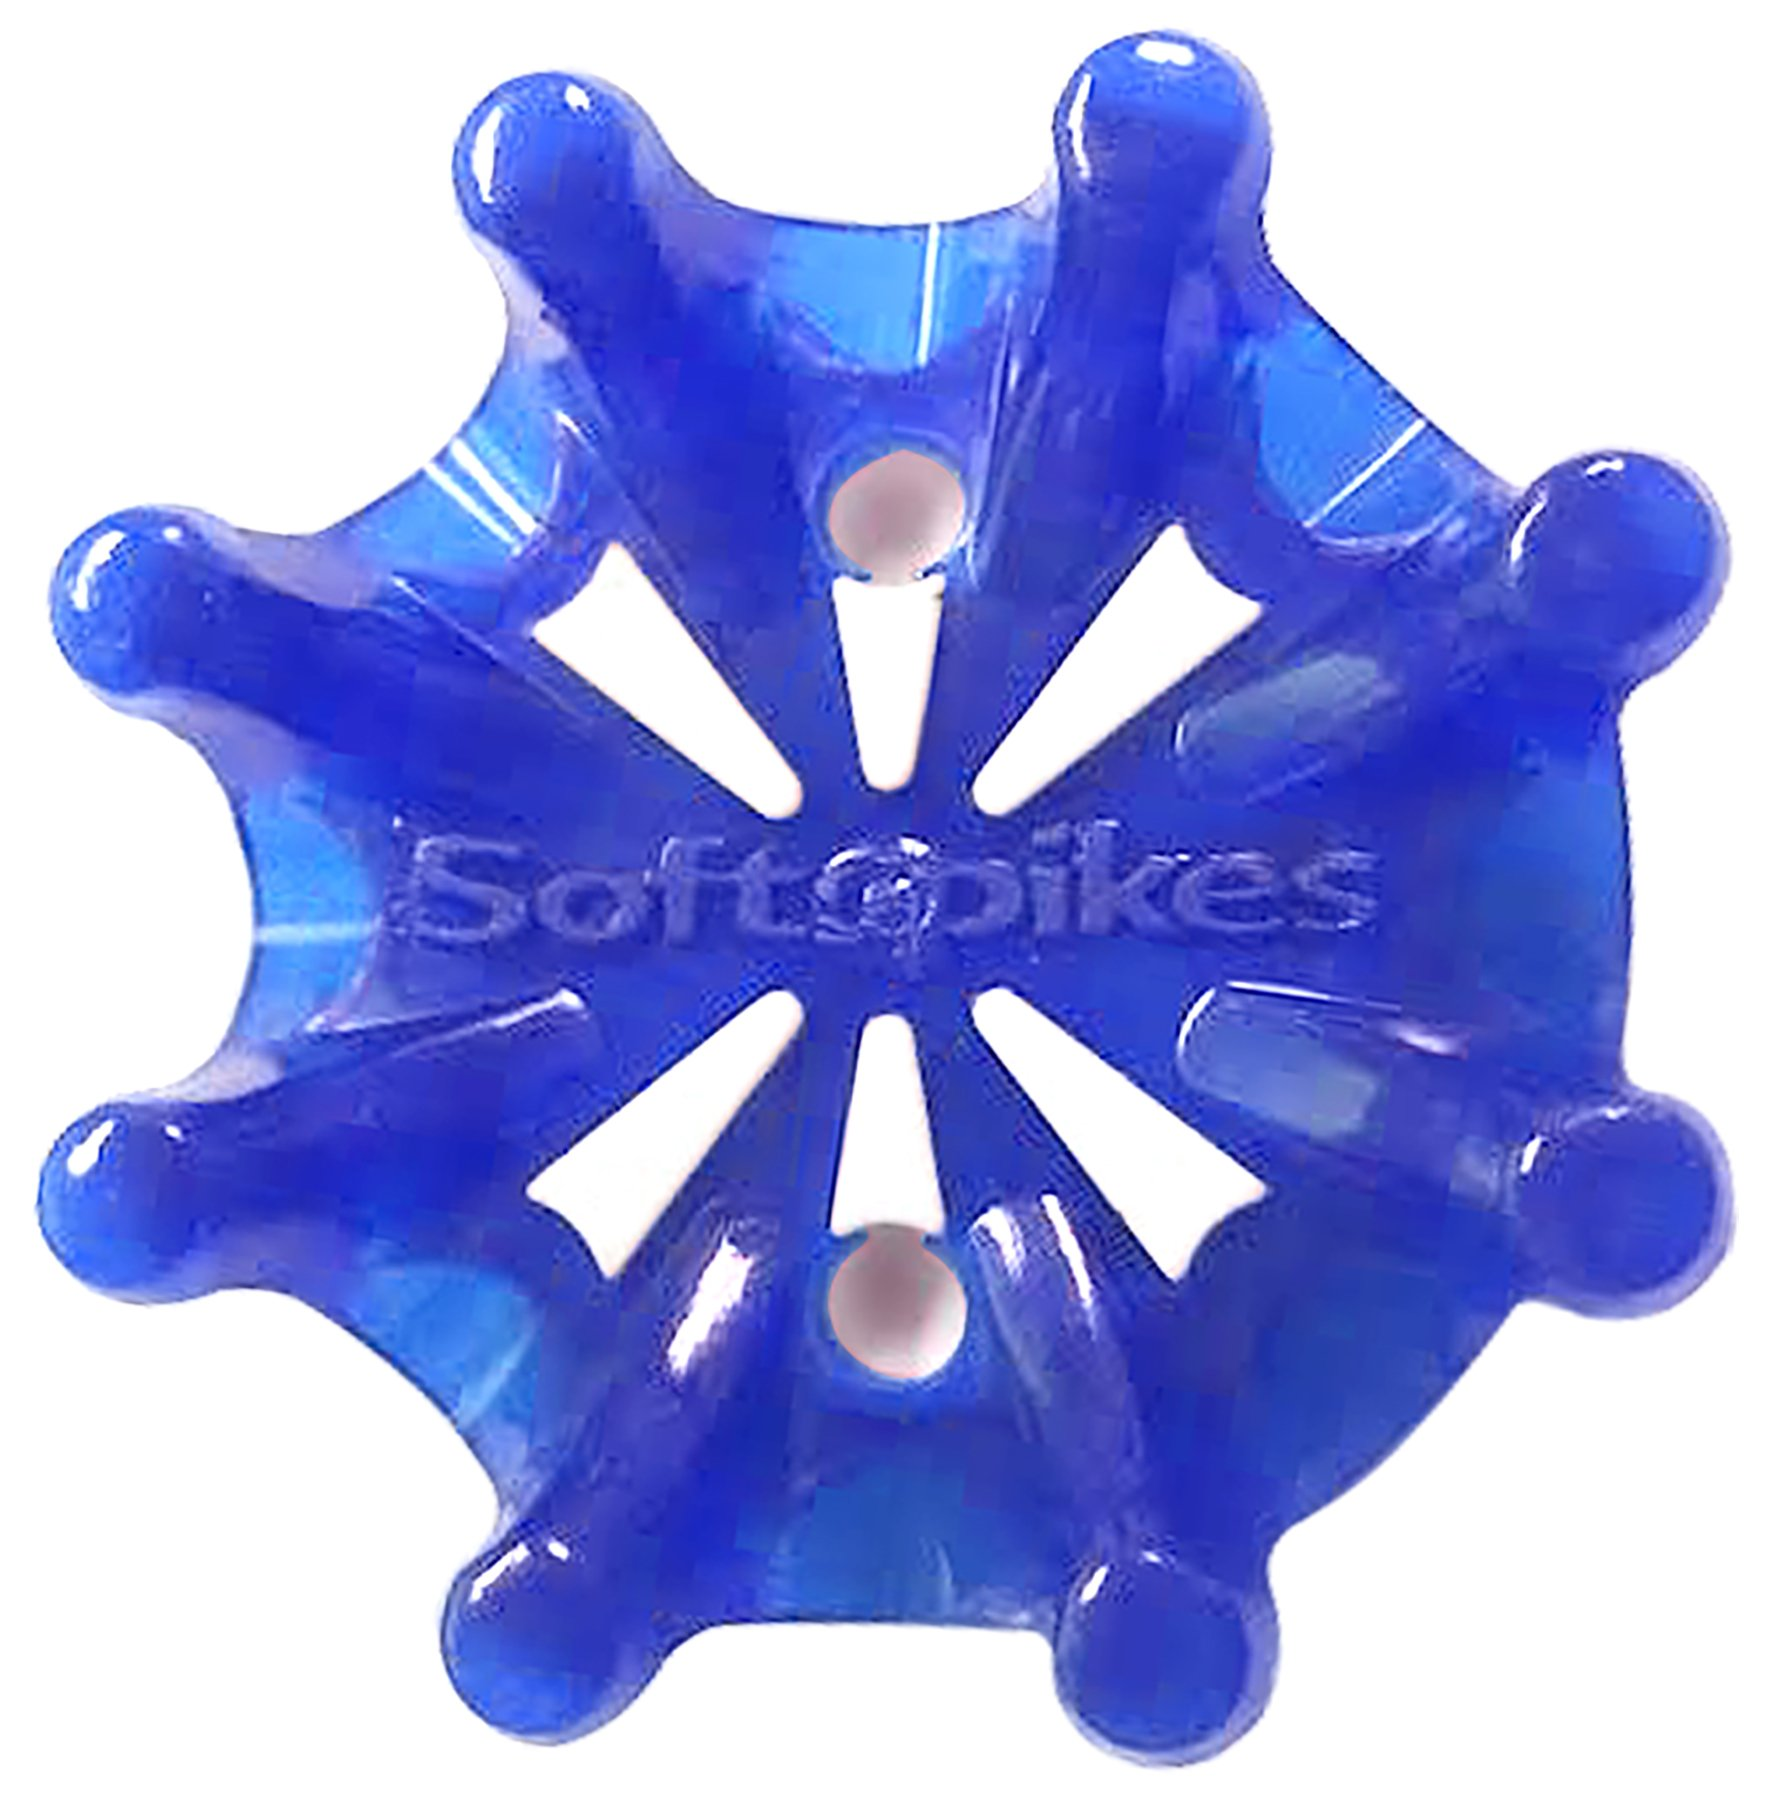 Softspikes Pulsar Golf Cleats Fast Twist 3.0  - Blue by SOFTSPIKES